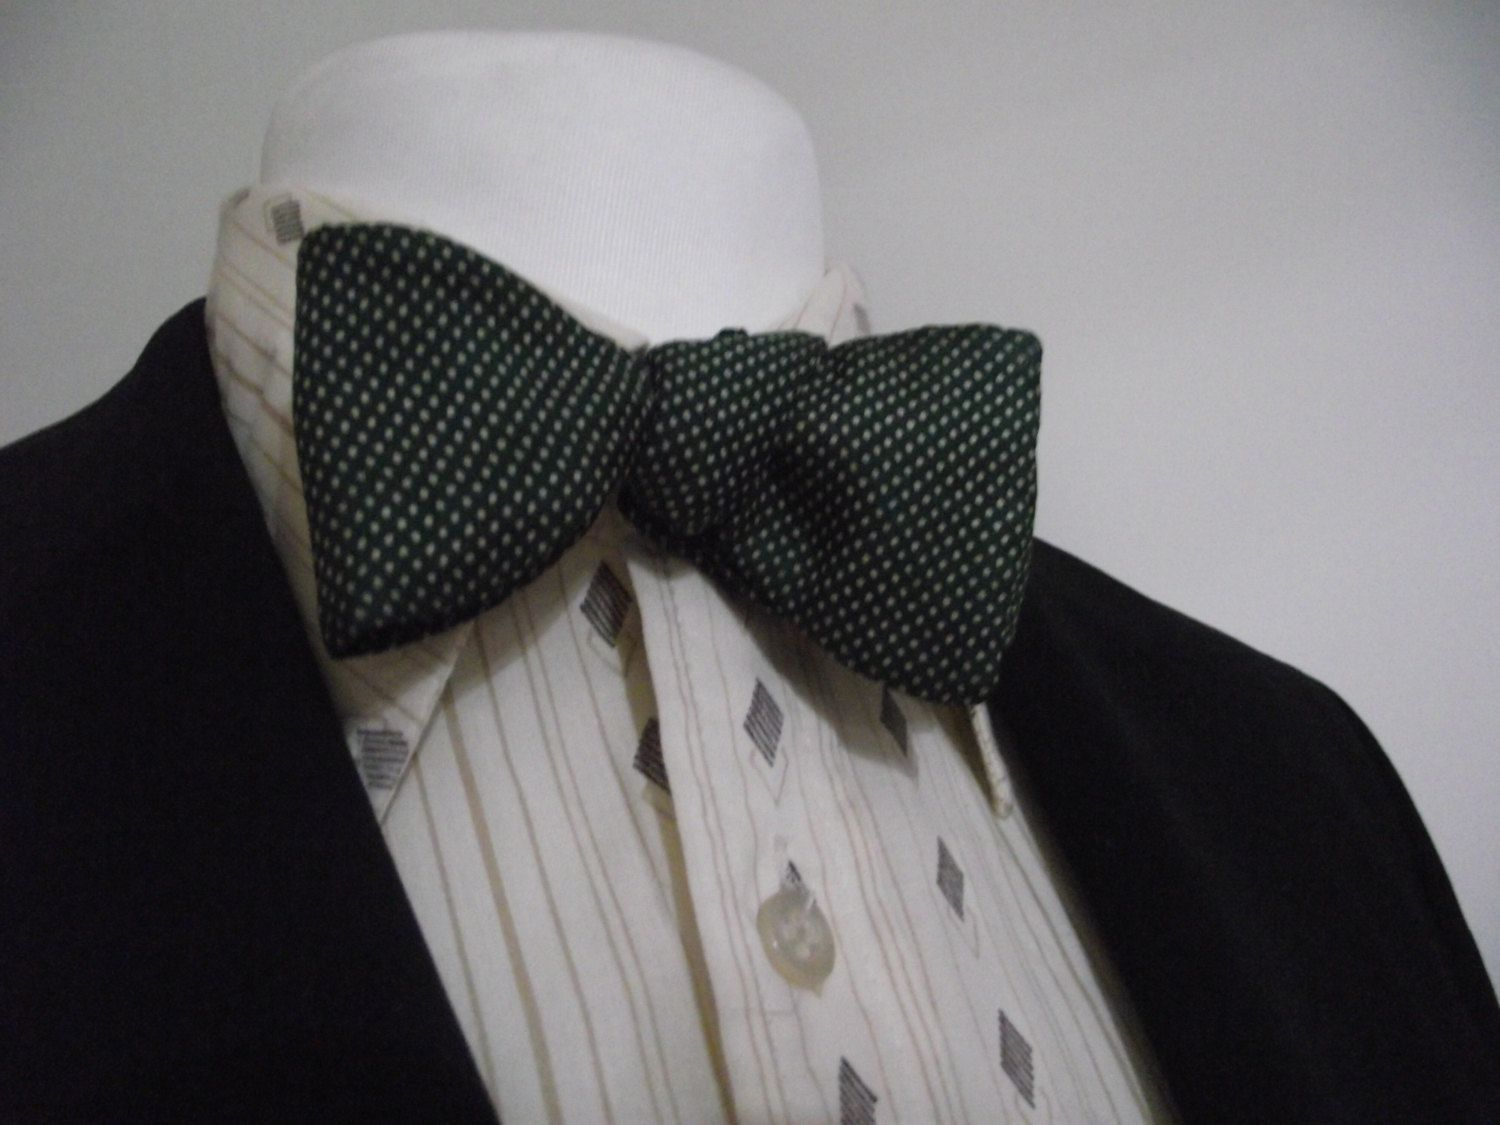 1950/'S Silk Suit Jacket  Fully Lined  All Silk Green /& Black Check  Women/'s Size Small to Medium